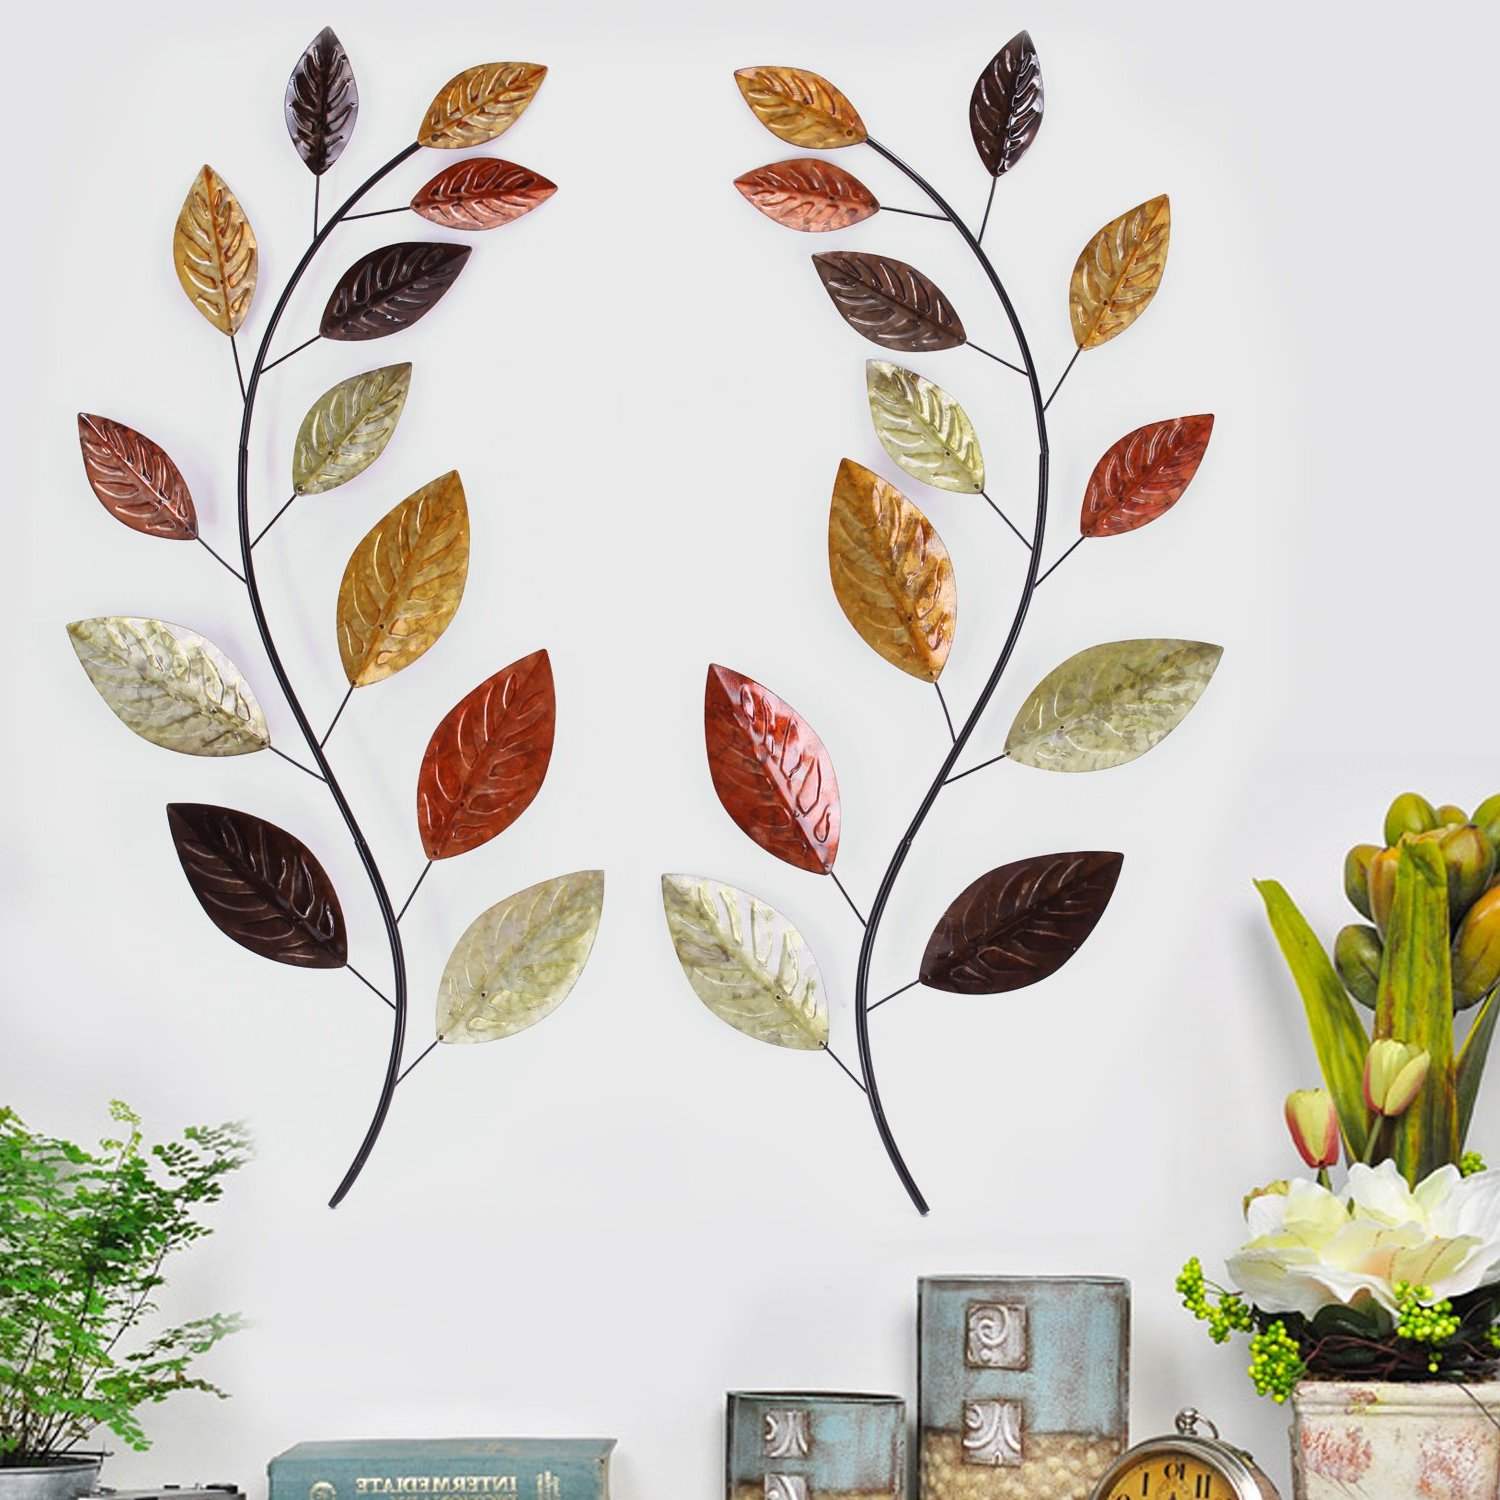 Asense Tree Leaf Metal Wall Art Sculptures Home Decor Life Decoration (View 5 of 10)